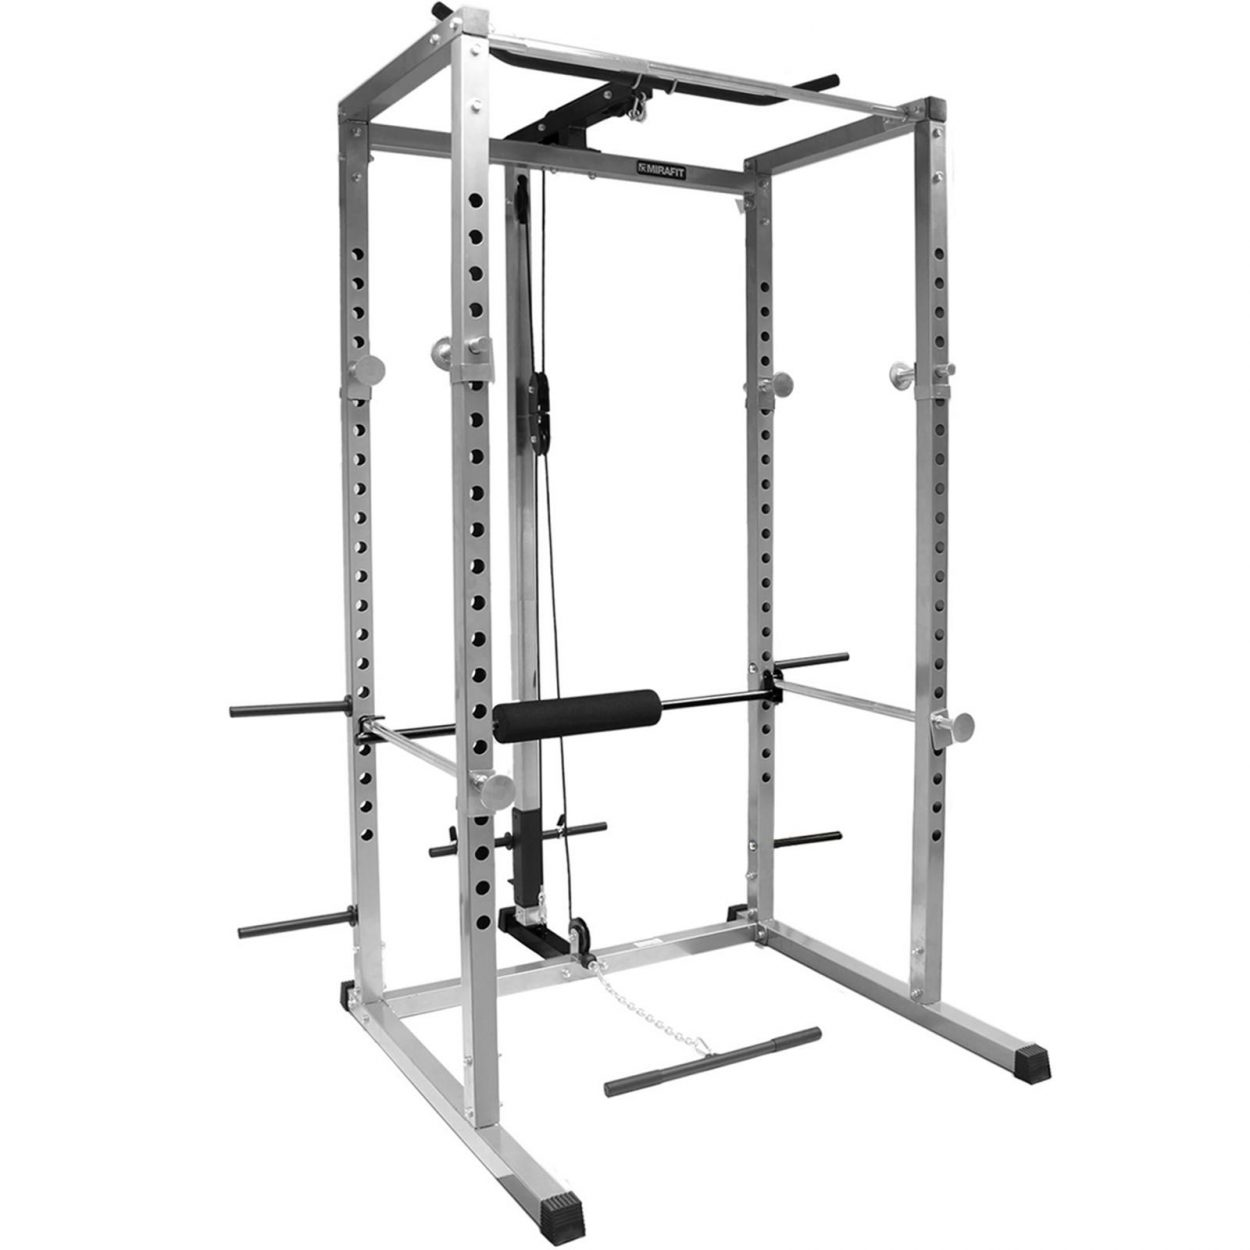 Mirafit 250kg Power Cage with Cable System – Silver/Black